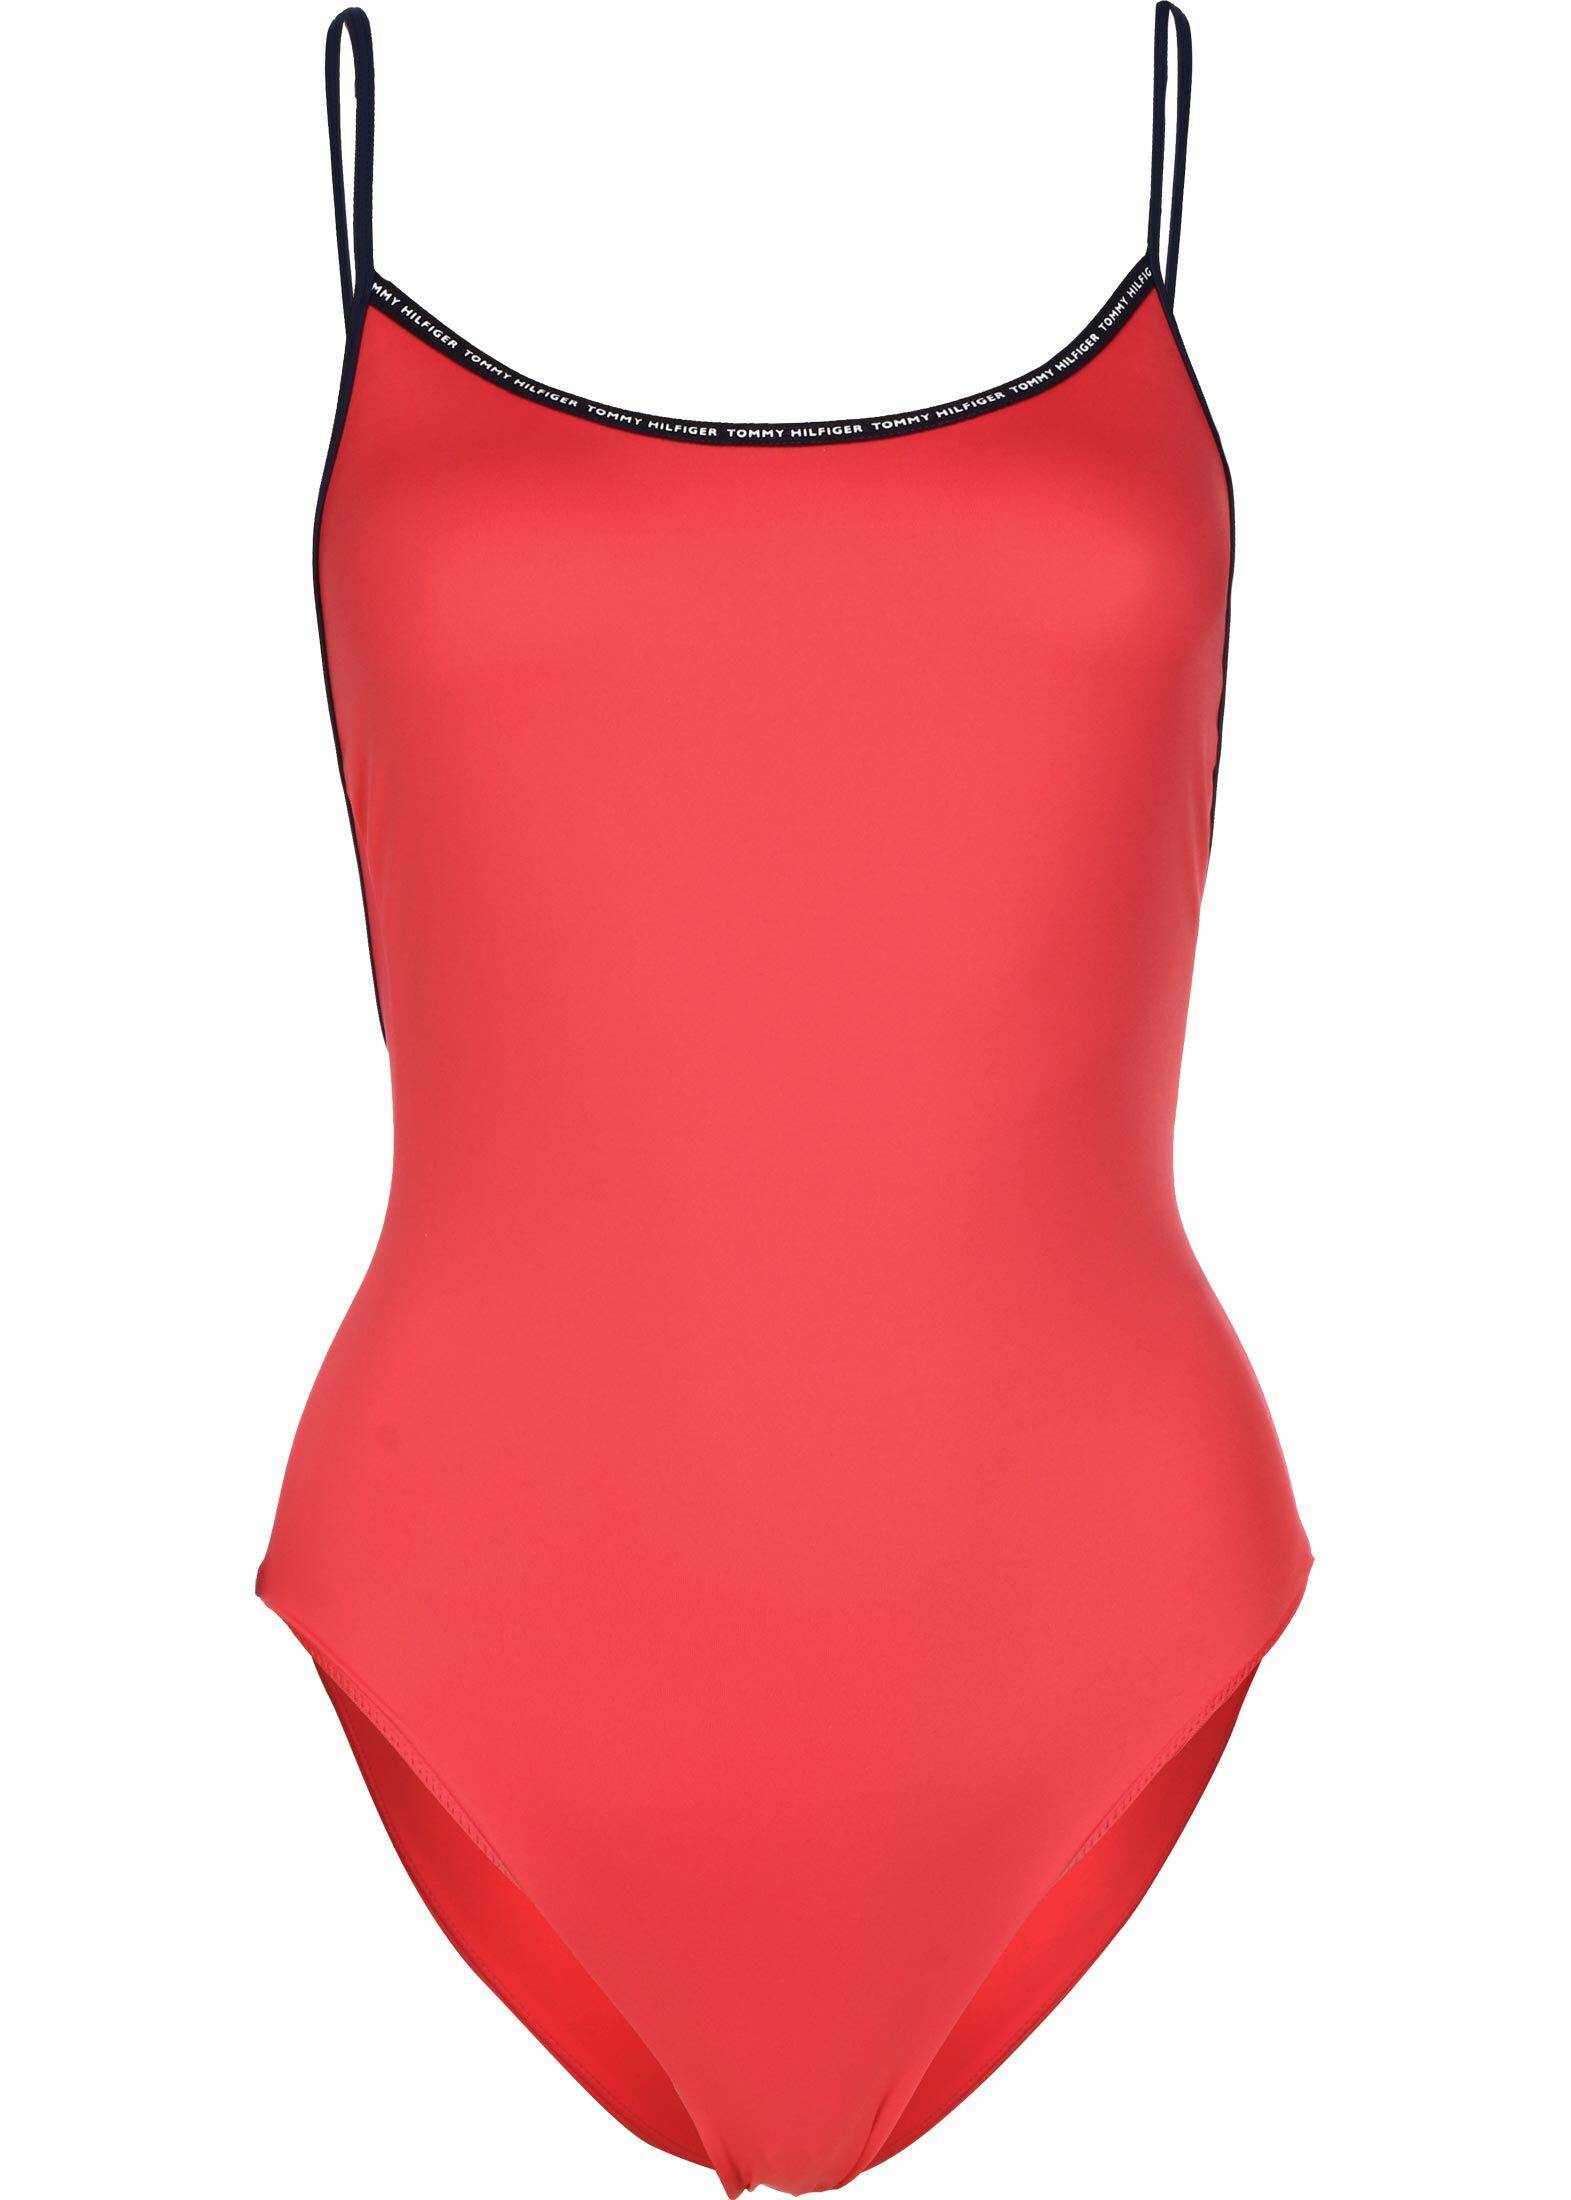 Tommy Hilfiger One-Piece, taille XS, femme, rouge